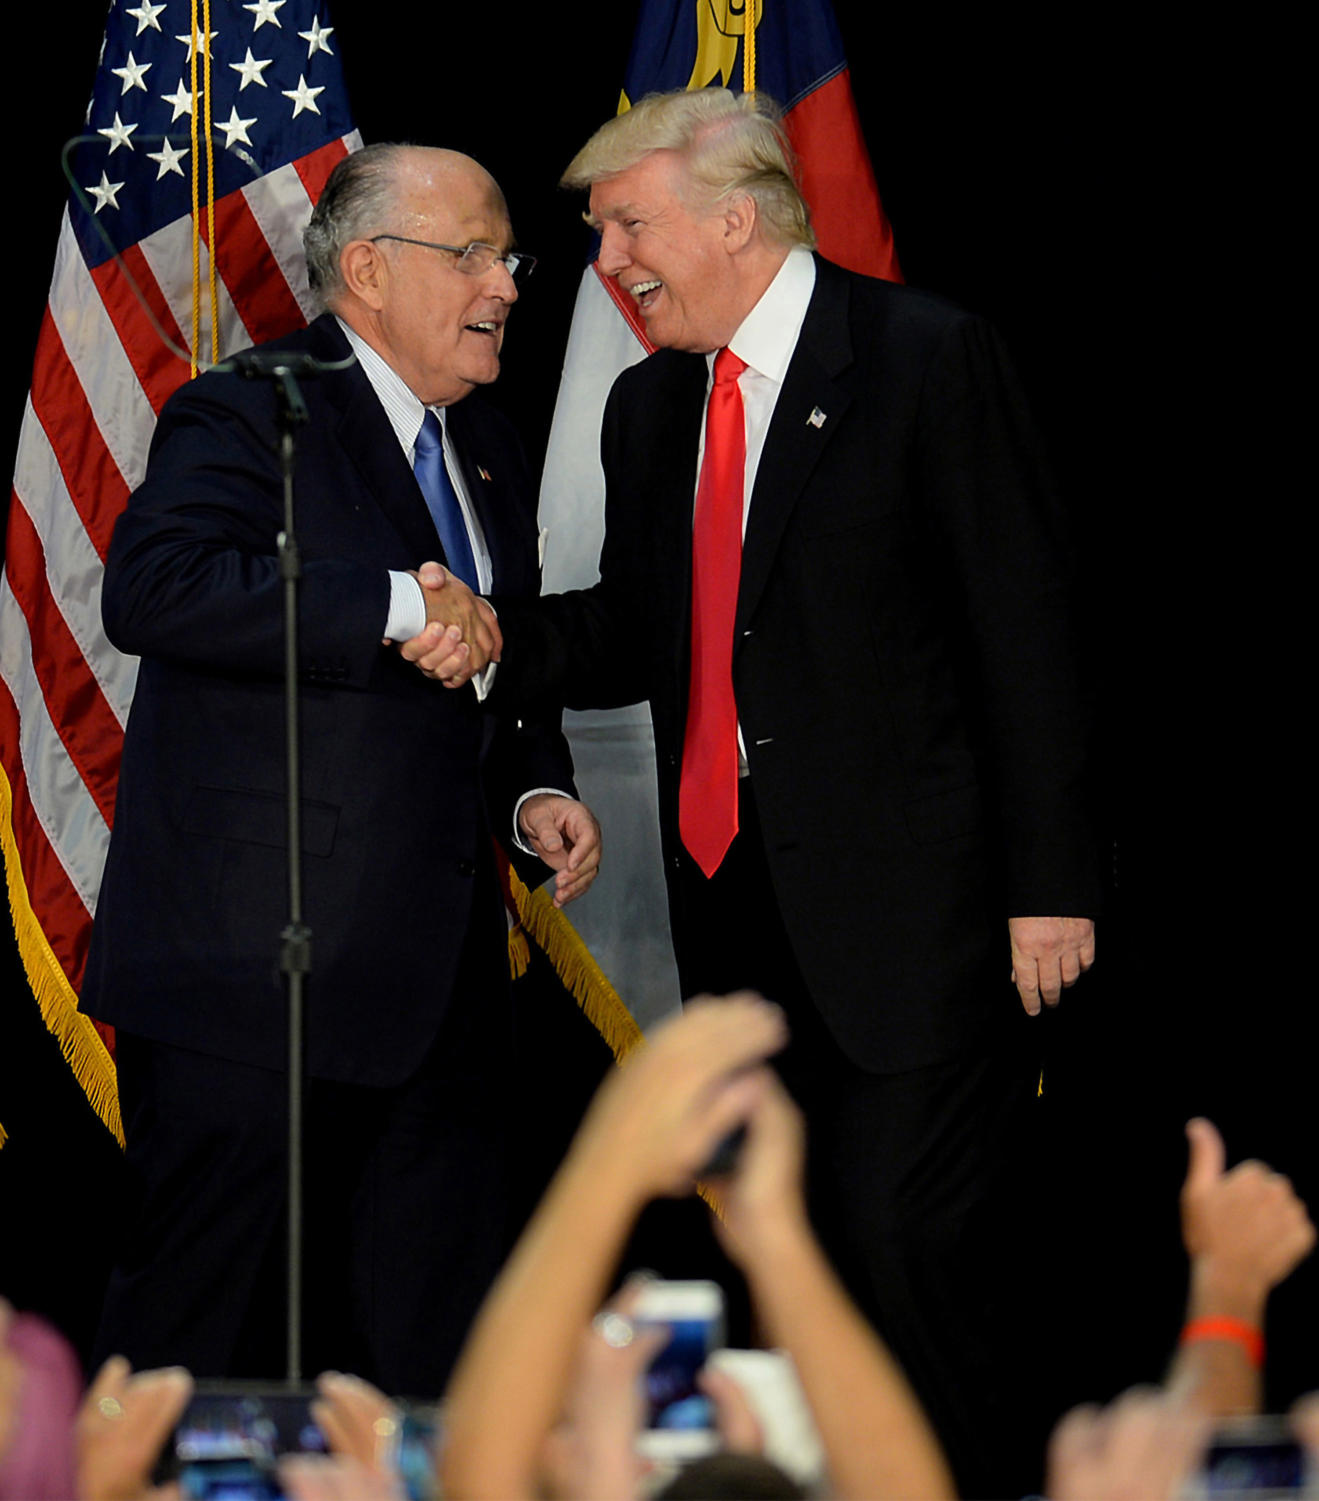 Former New York City mayor Rudy Giuliani, left, welcomes Republican presidential candidate Donald Trump on stage during a campaign rally on Aug. 18, 2016, at the Charlotte Convention Center in Charlotte, N.C.